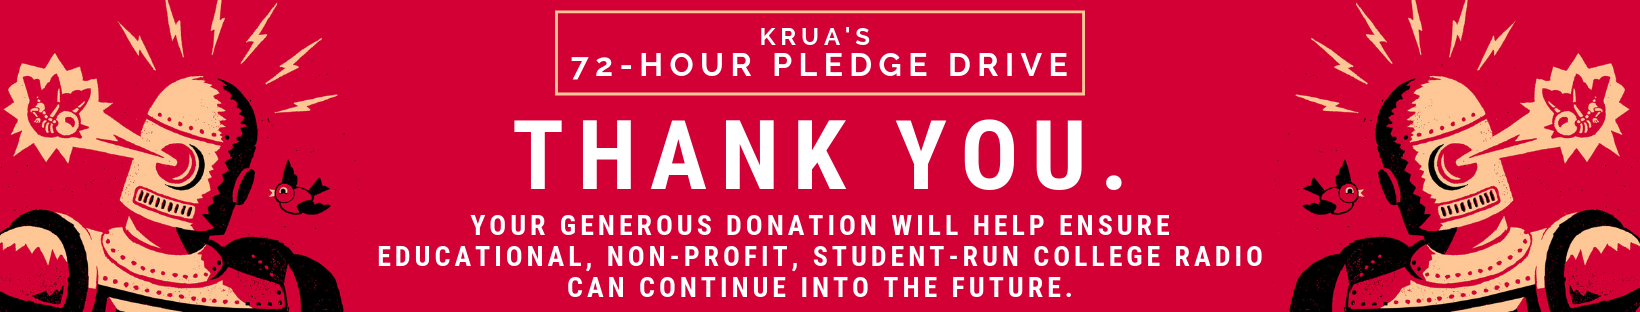 Copy of KRUA's 72-Hour pledge drive Banner thank you.png